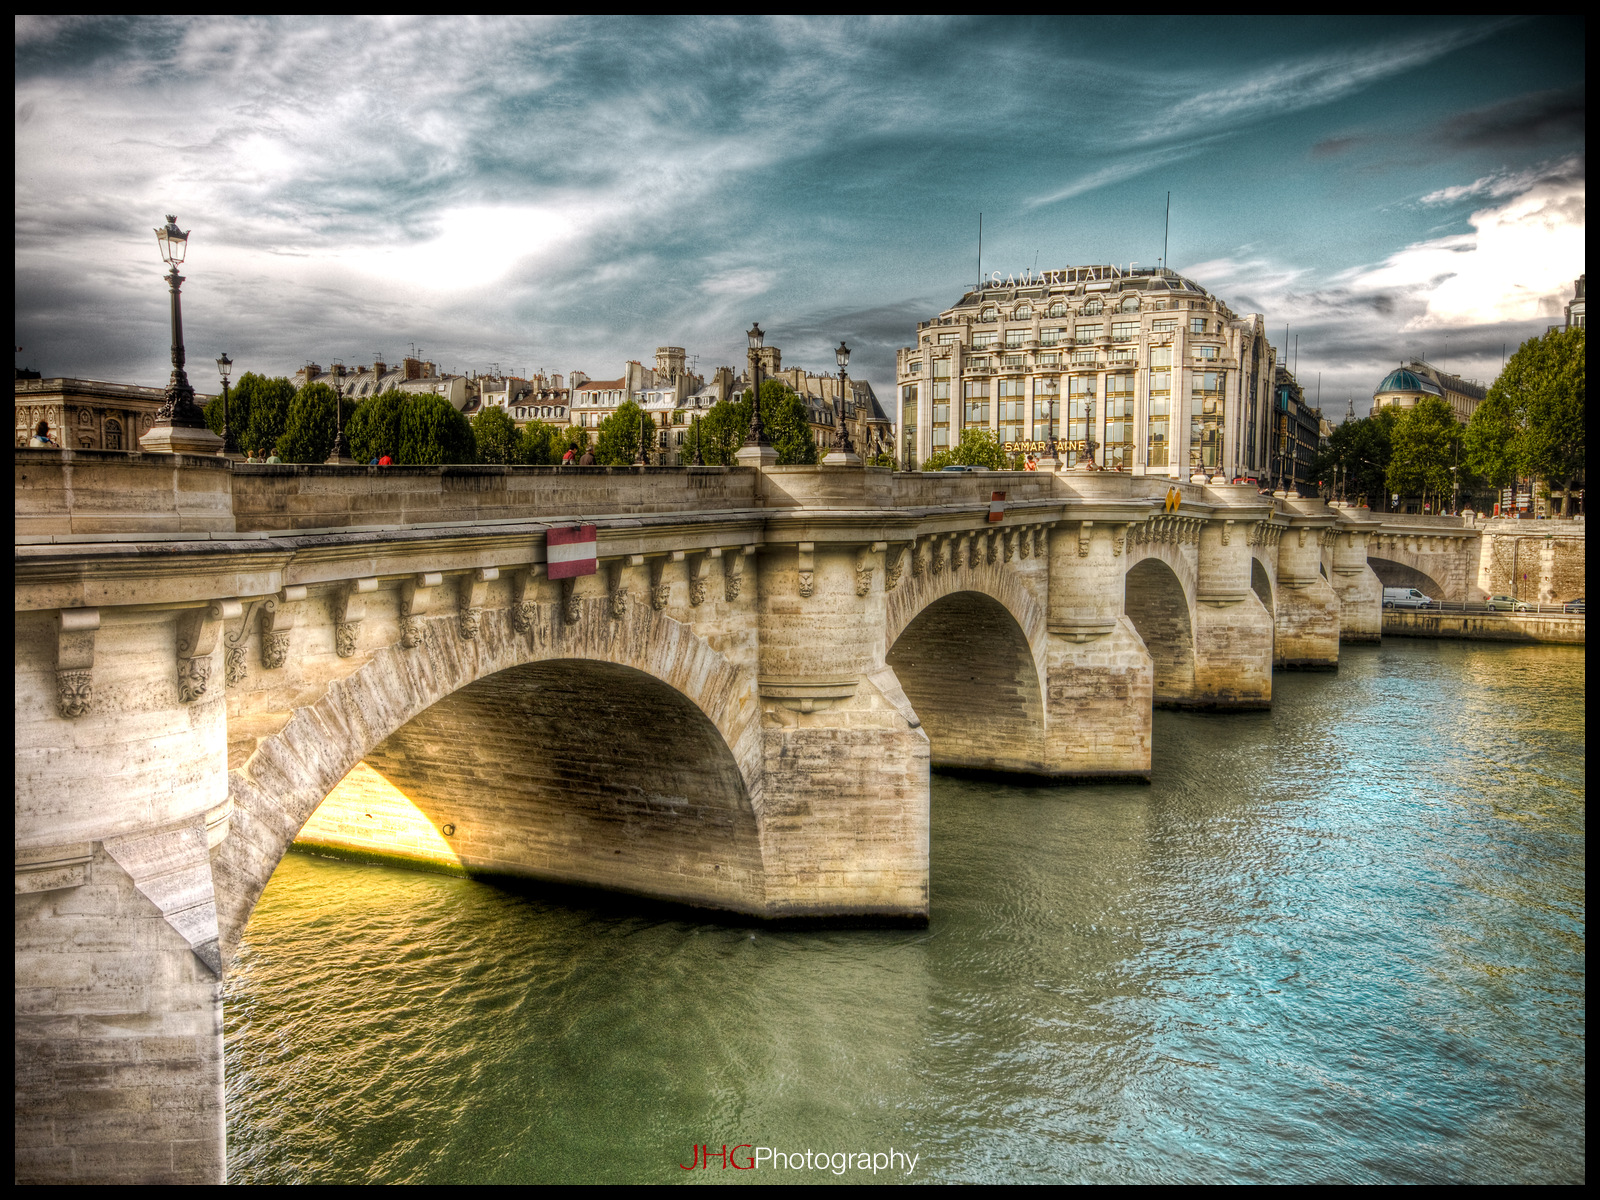 Paris france hd high definition wallpaper from jhg photo free